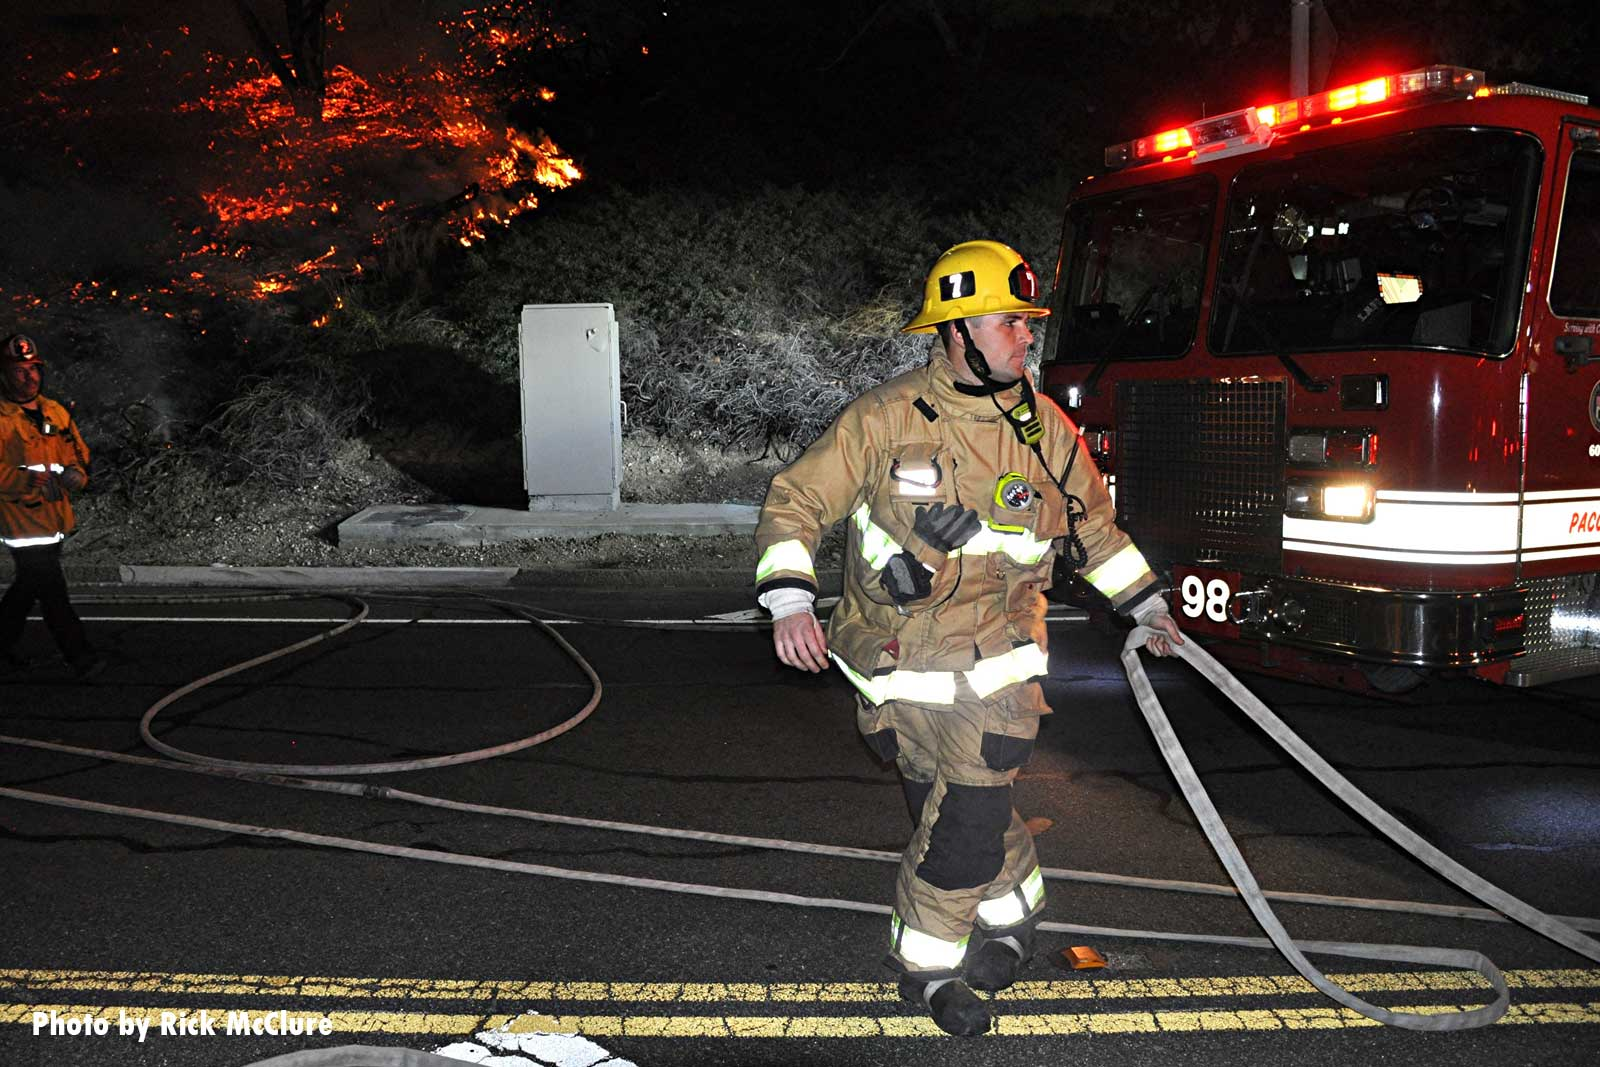 A Los Angeles firefighter flakes out a hoseline at the fire